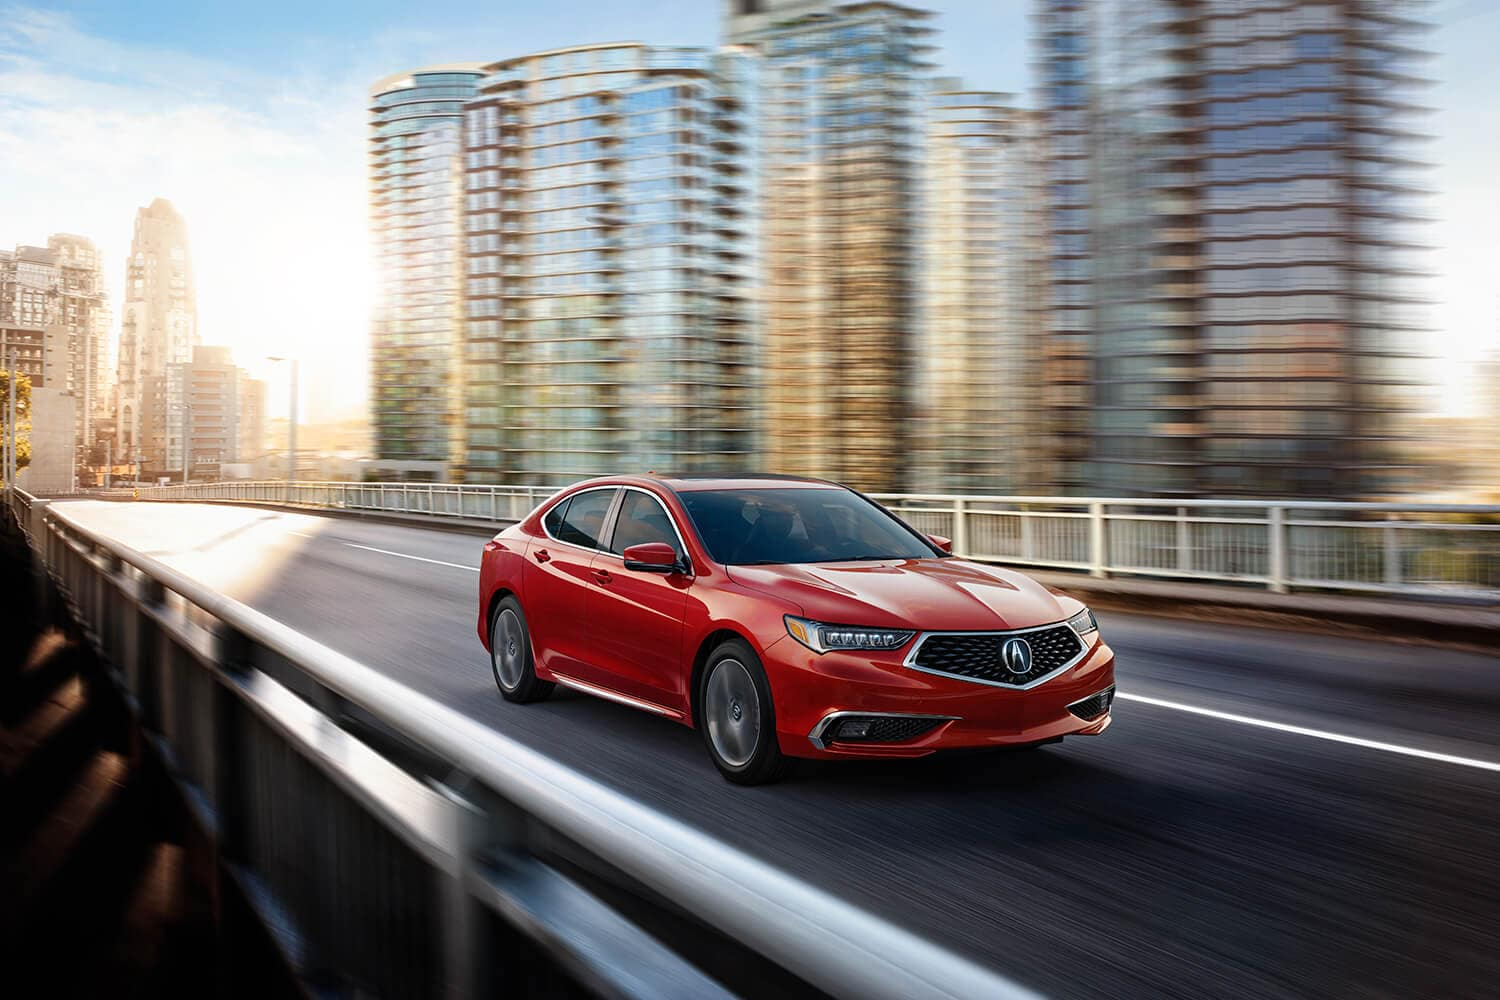 2020 Acura TLX Exterior Front Angle Passenger Side Bridge